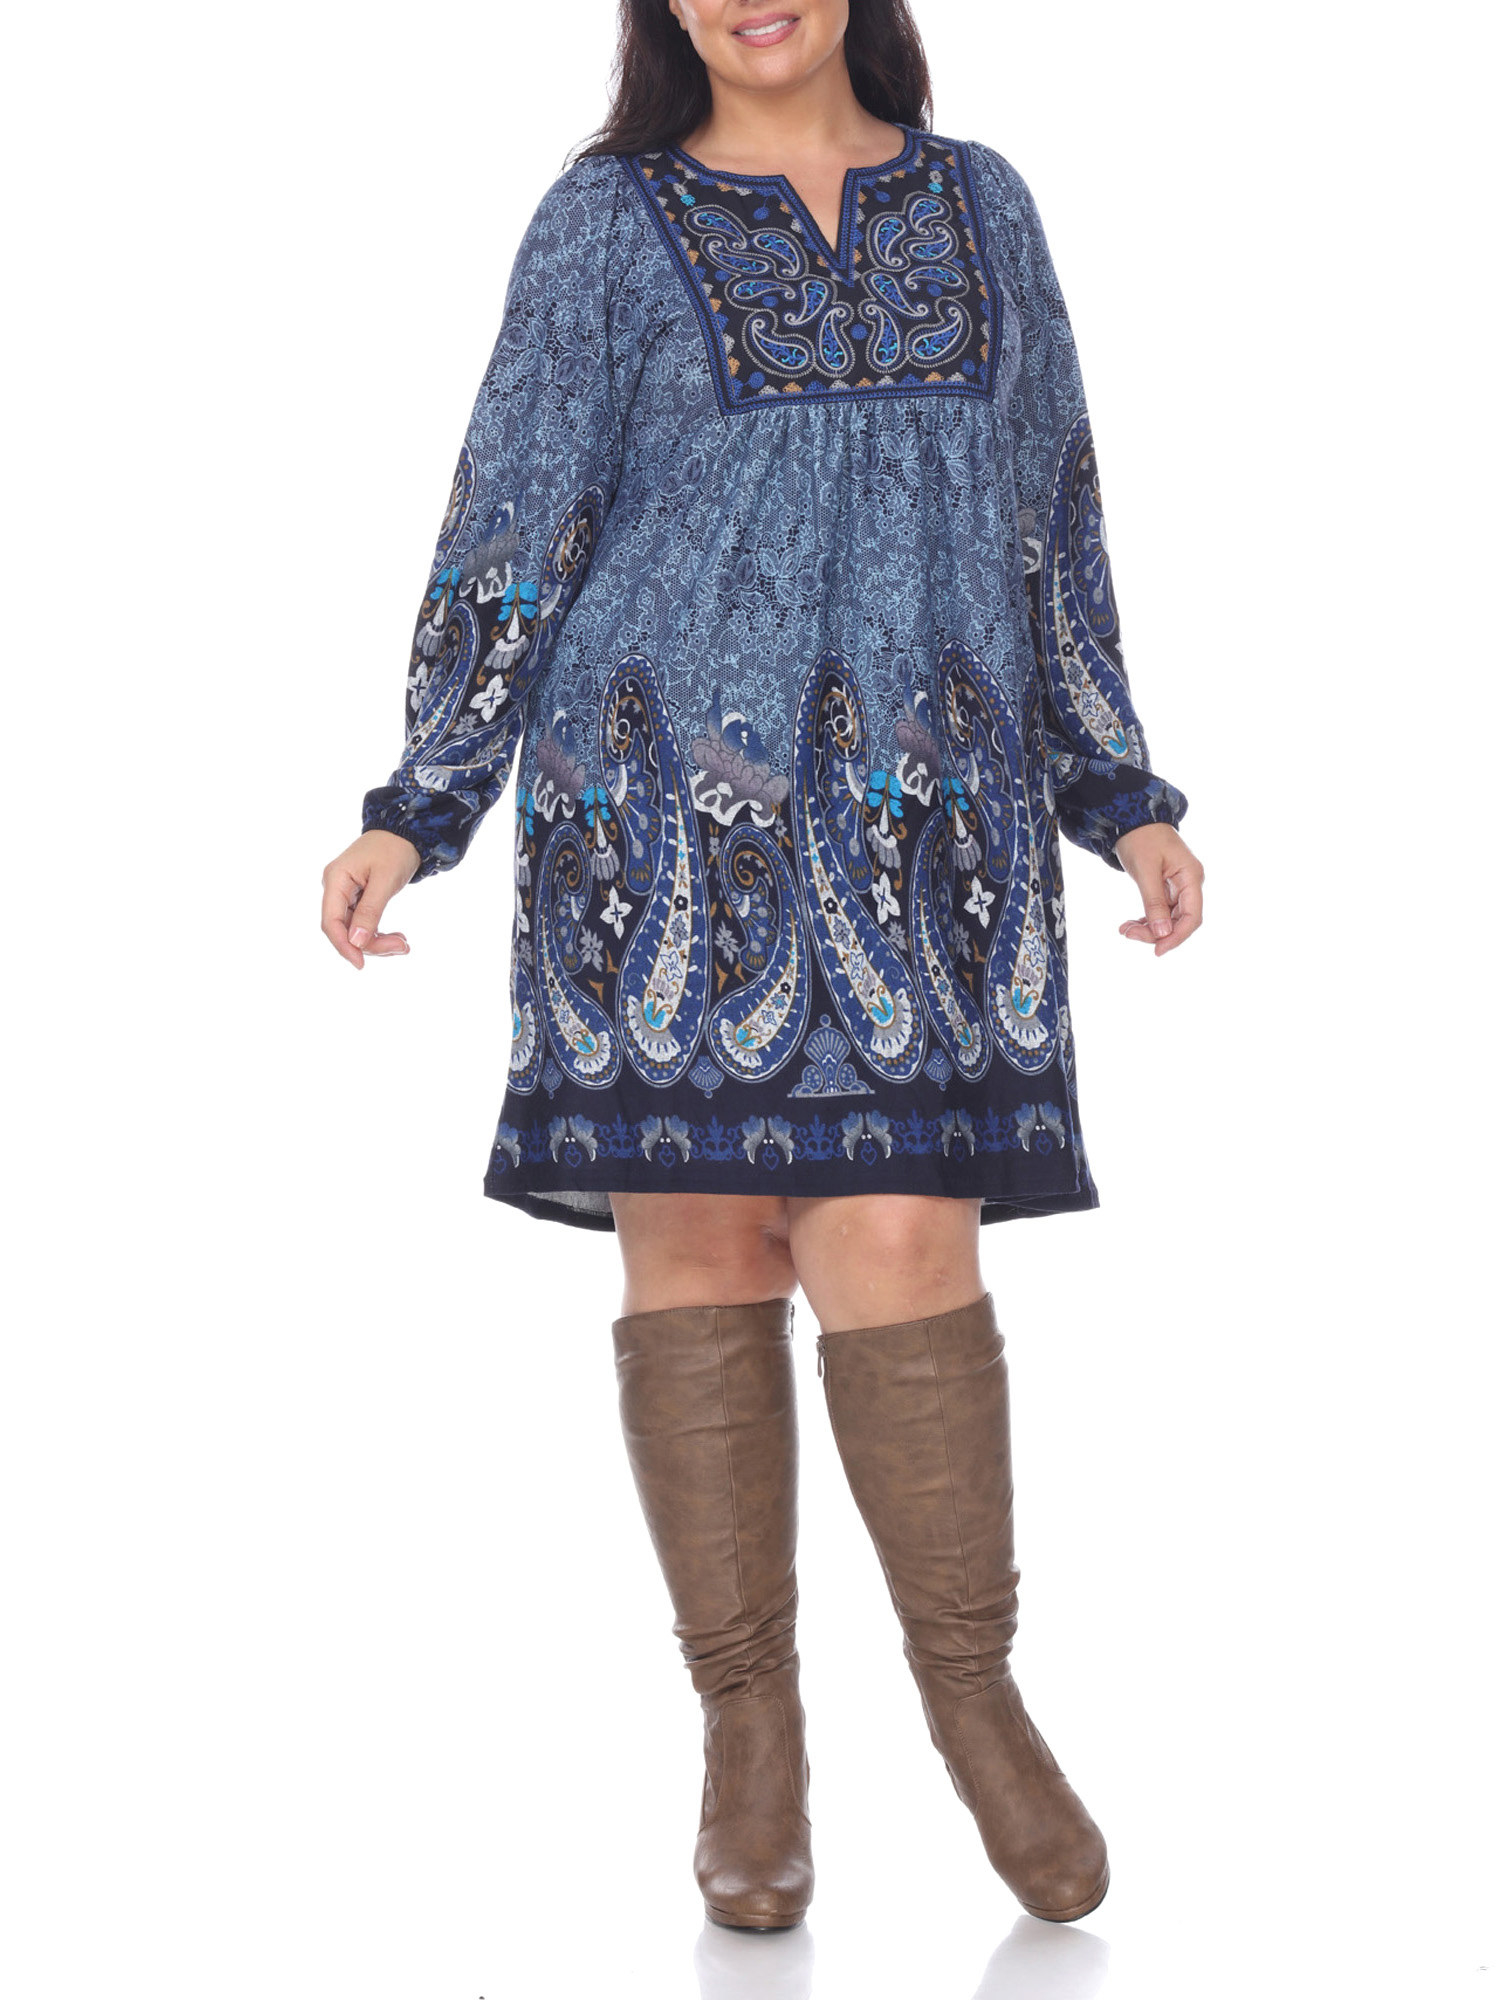 model in a blue paisley dress with long sleeves